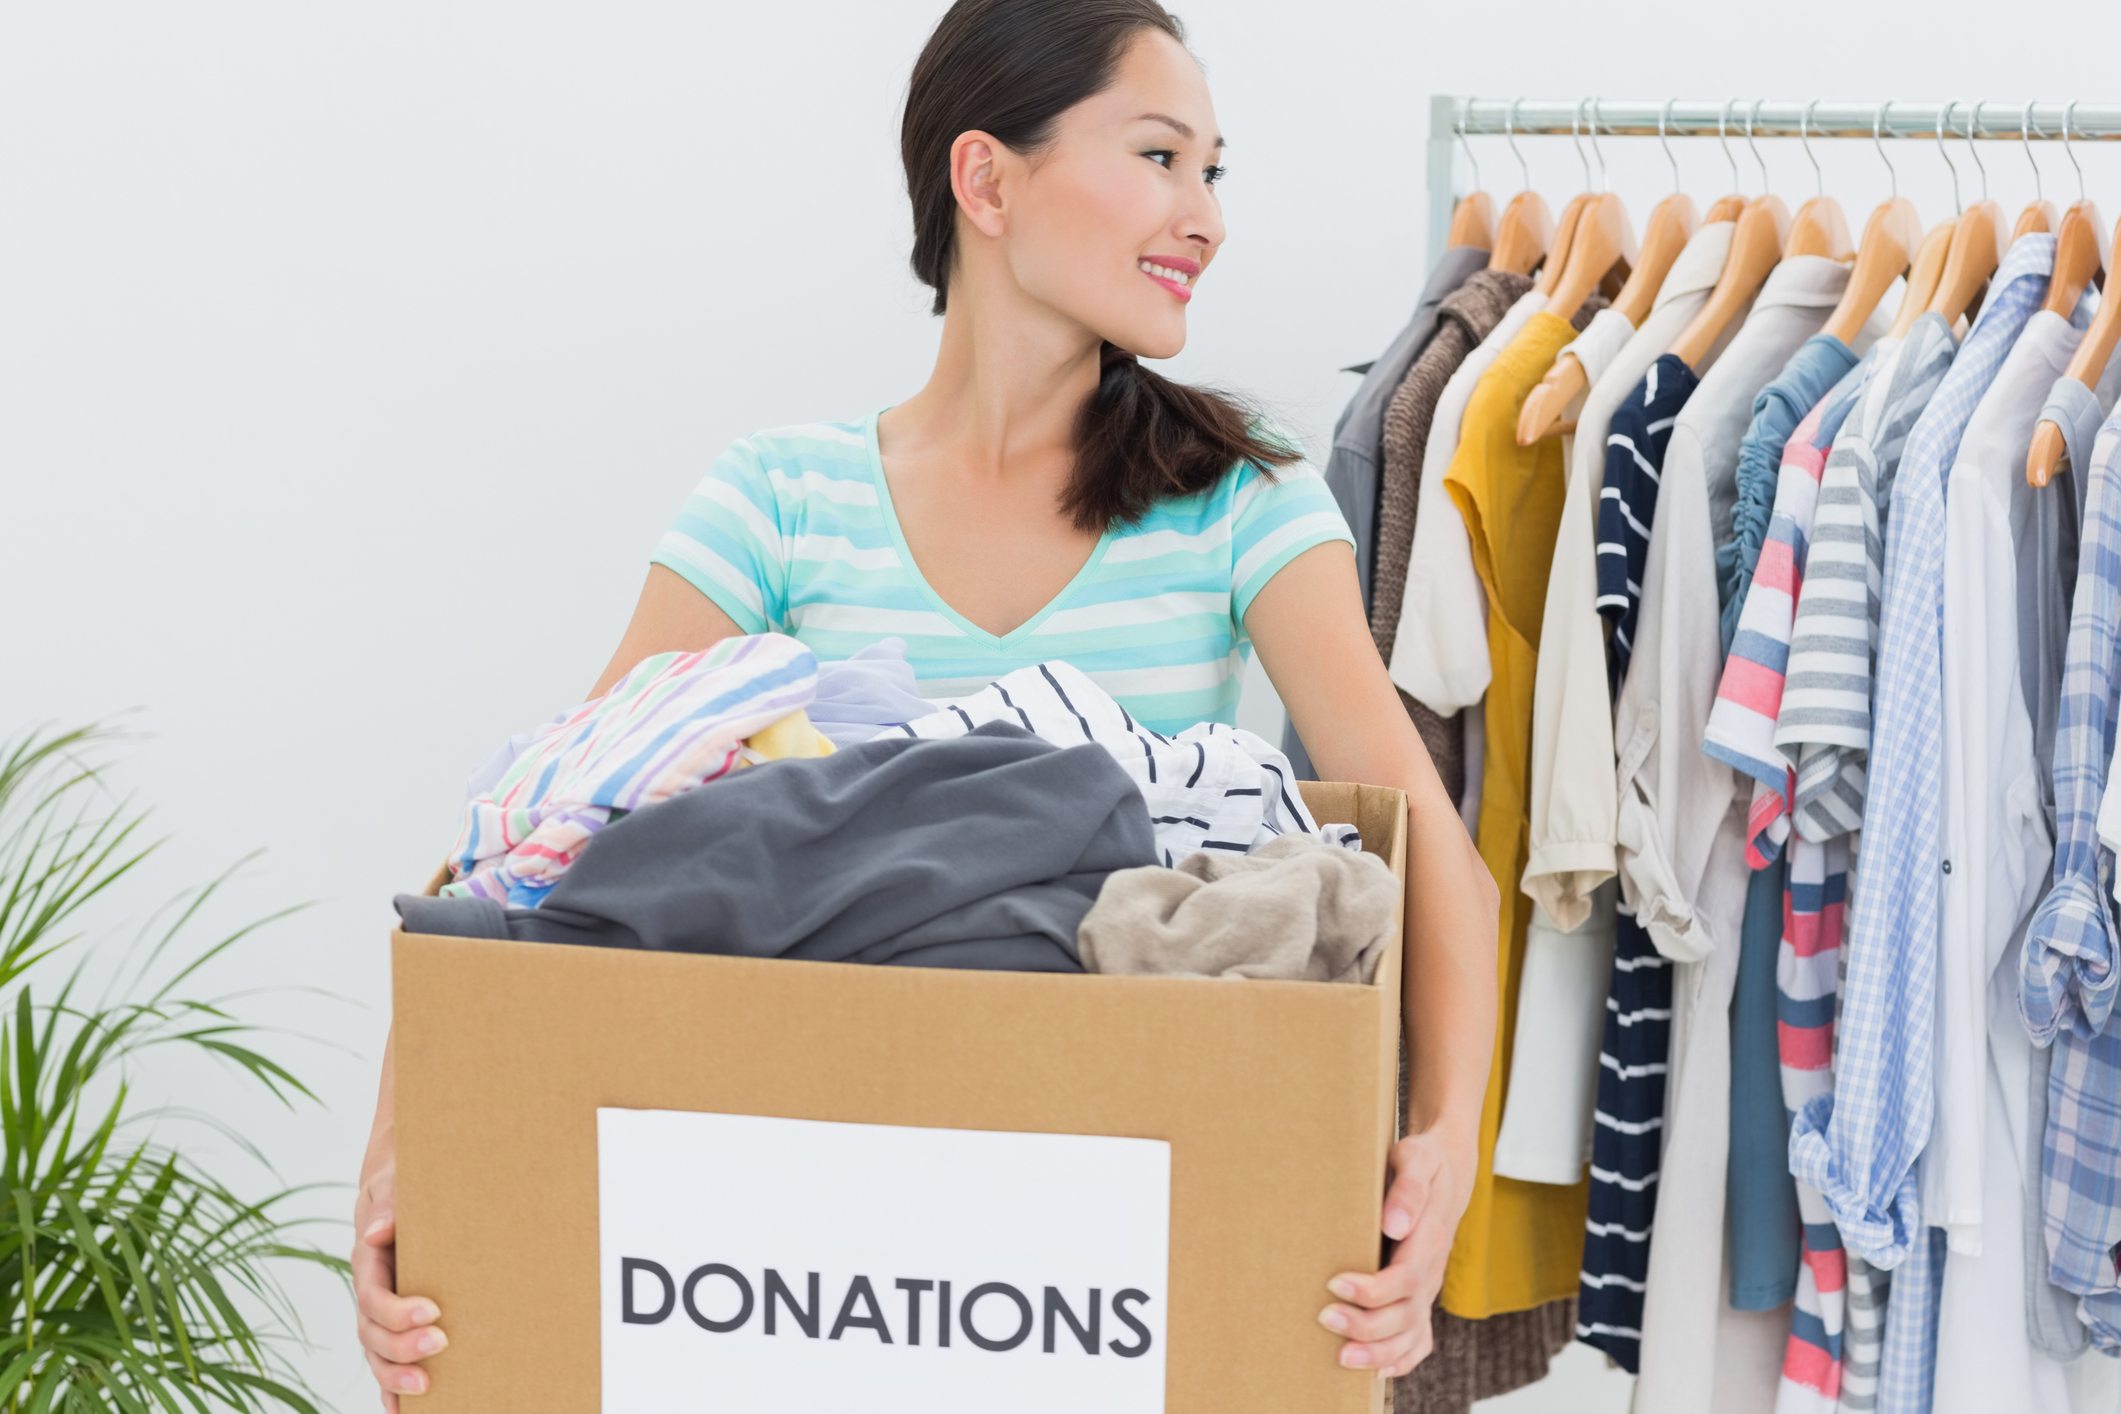 Generic photo of woman sorting clothes to give to charity (Thinkstock/PA)